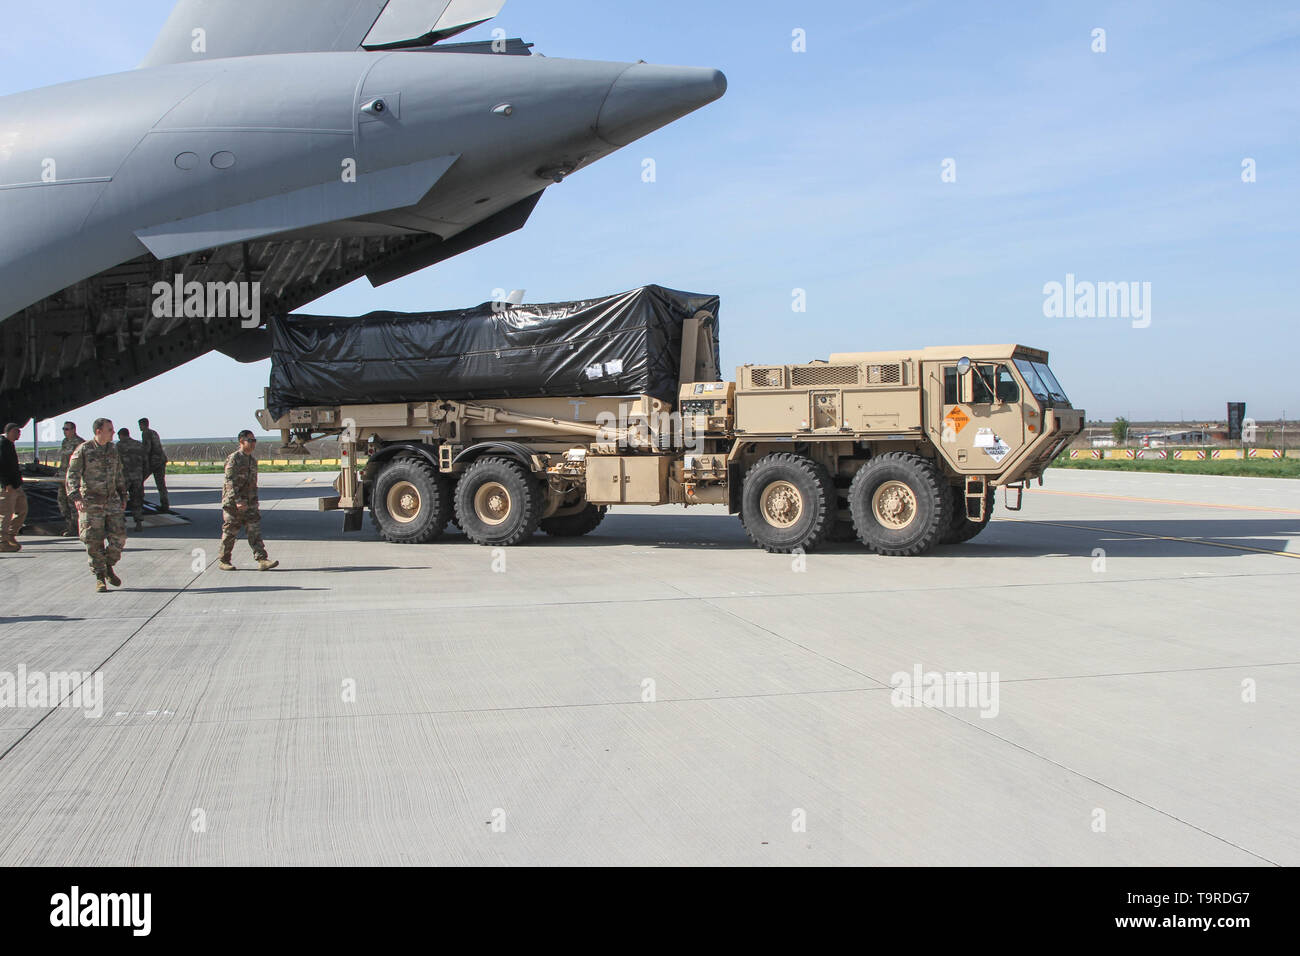 MIHAIL KOGALNICEANU (MK) AIR BASE, ROMANIA - American troops offload a Terminal High Altitude Area Defense (THAAD) launcher from a C-17 Globemaster III at Mihail Kogalniceanu (MK) Air Base, Romania, May 3, 2019. The THAAD deployed to Romania from 69th Air Defense Artillery Brigade, 32nd Army Air and Missile Defense Command out of Fort Hood, Texas. The deployment of the THAAD is in support of the NATO Ballistic Missile Defense mission and reinforces the strong and unremitting U.S. commitment to the defense of our NATO allies. - Stock Image